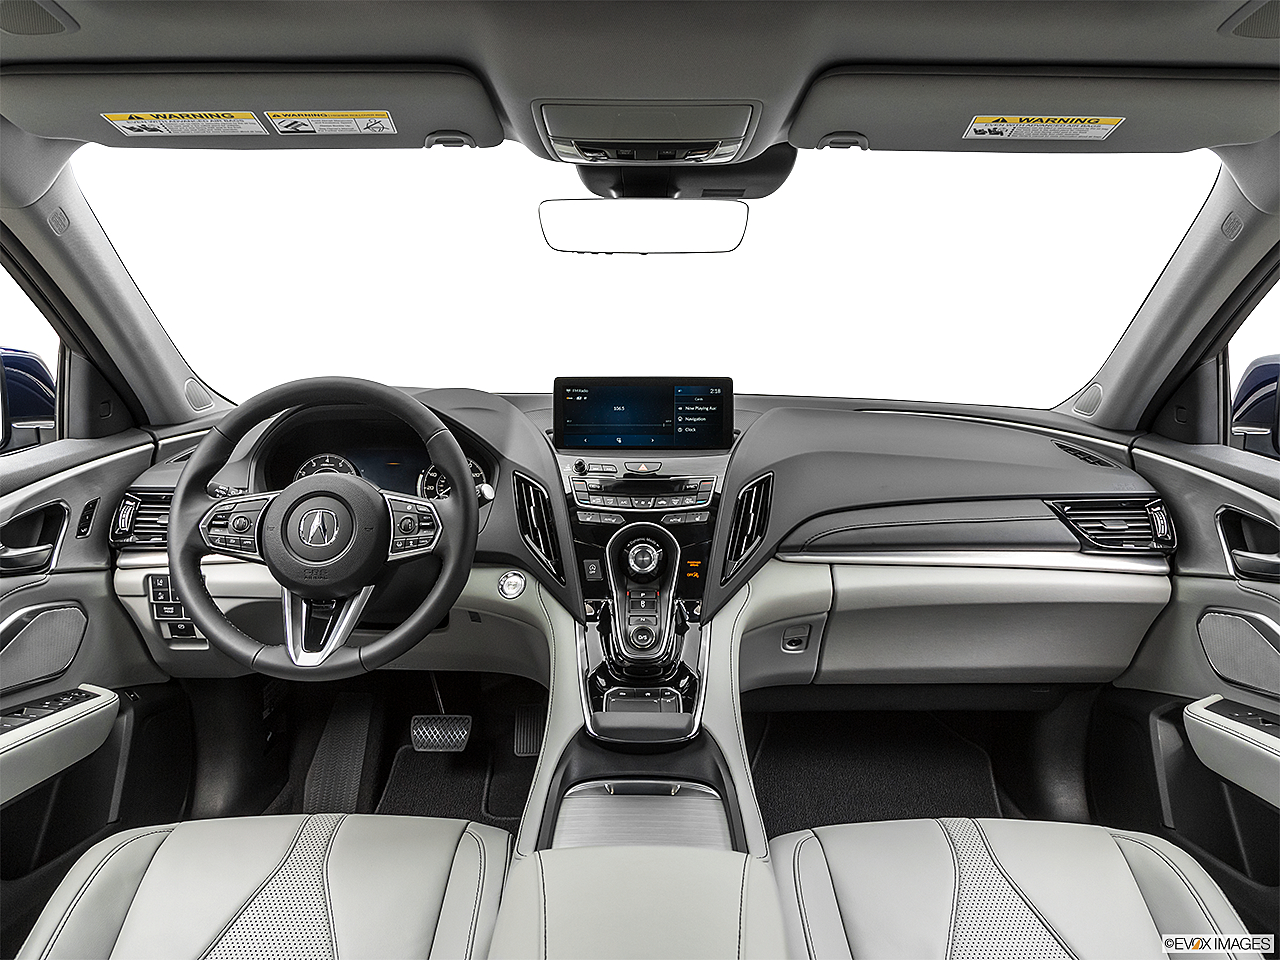 2020 Acura RDX, centered wide dash shot